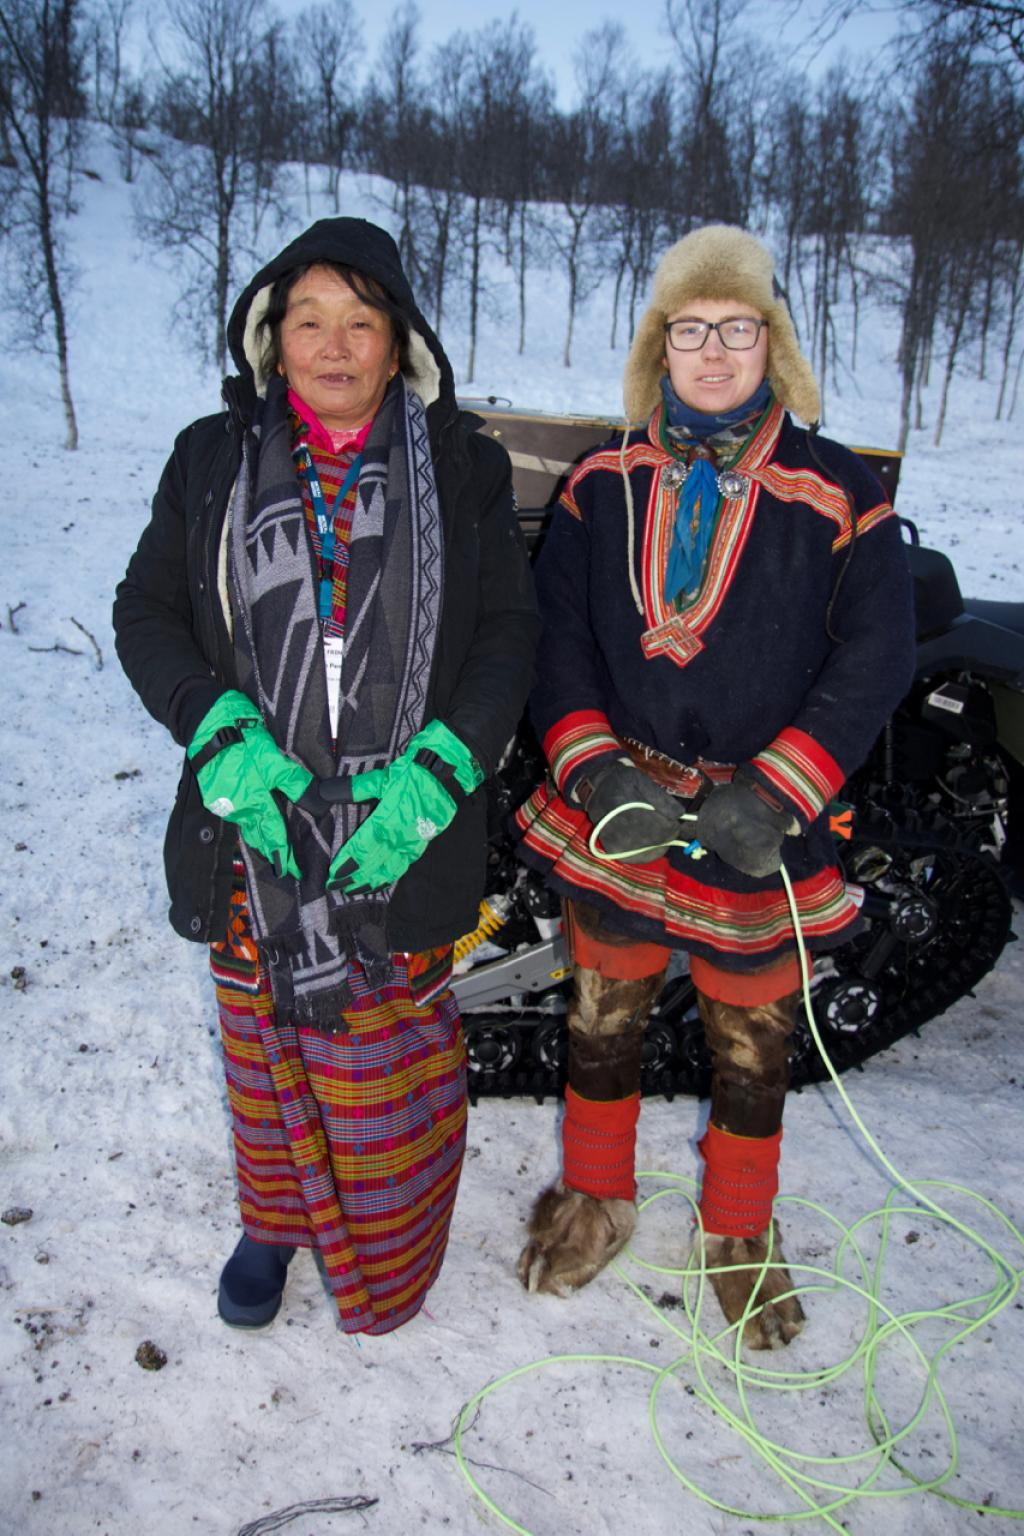 Yuden Pem, a yak herder from Bhutan, and Mikal Juhan Ailo Utsi, a reindeer herder from Norway. Credit: ICIMOD